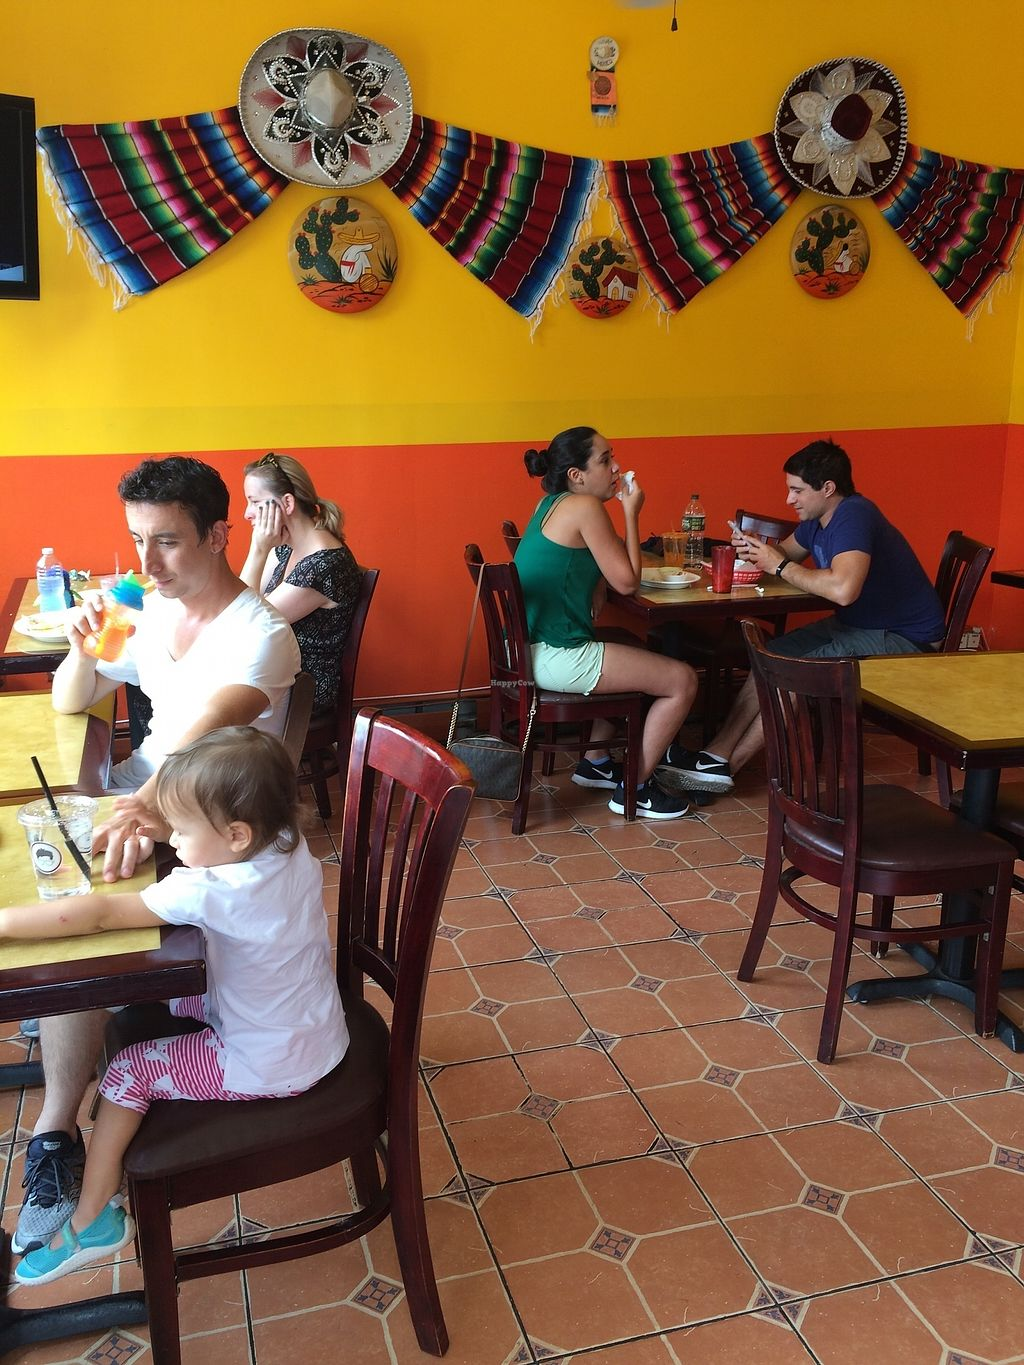 """Photo of Bubby's Burritos  by <a href=""""/members/profile/Trummerflute"""">Trummerflute</a> <br/>Indoor seating (has AC) <br/> July 23, 2017  - <a href='/contact/abuse/image/96849/283431'>Report</a>"""